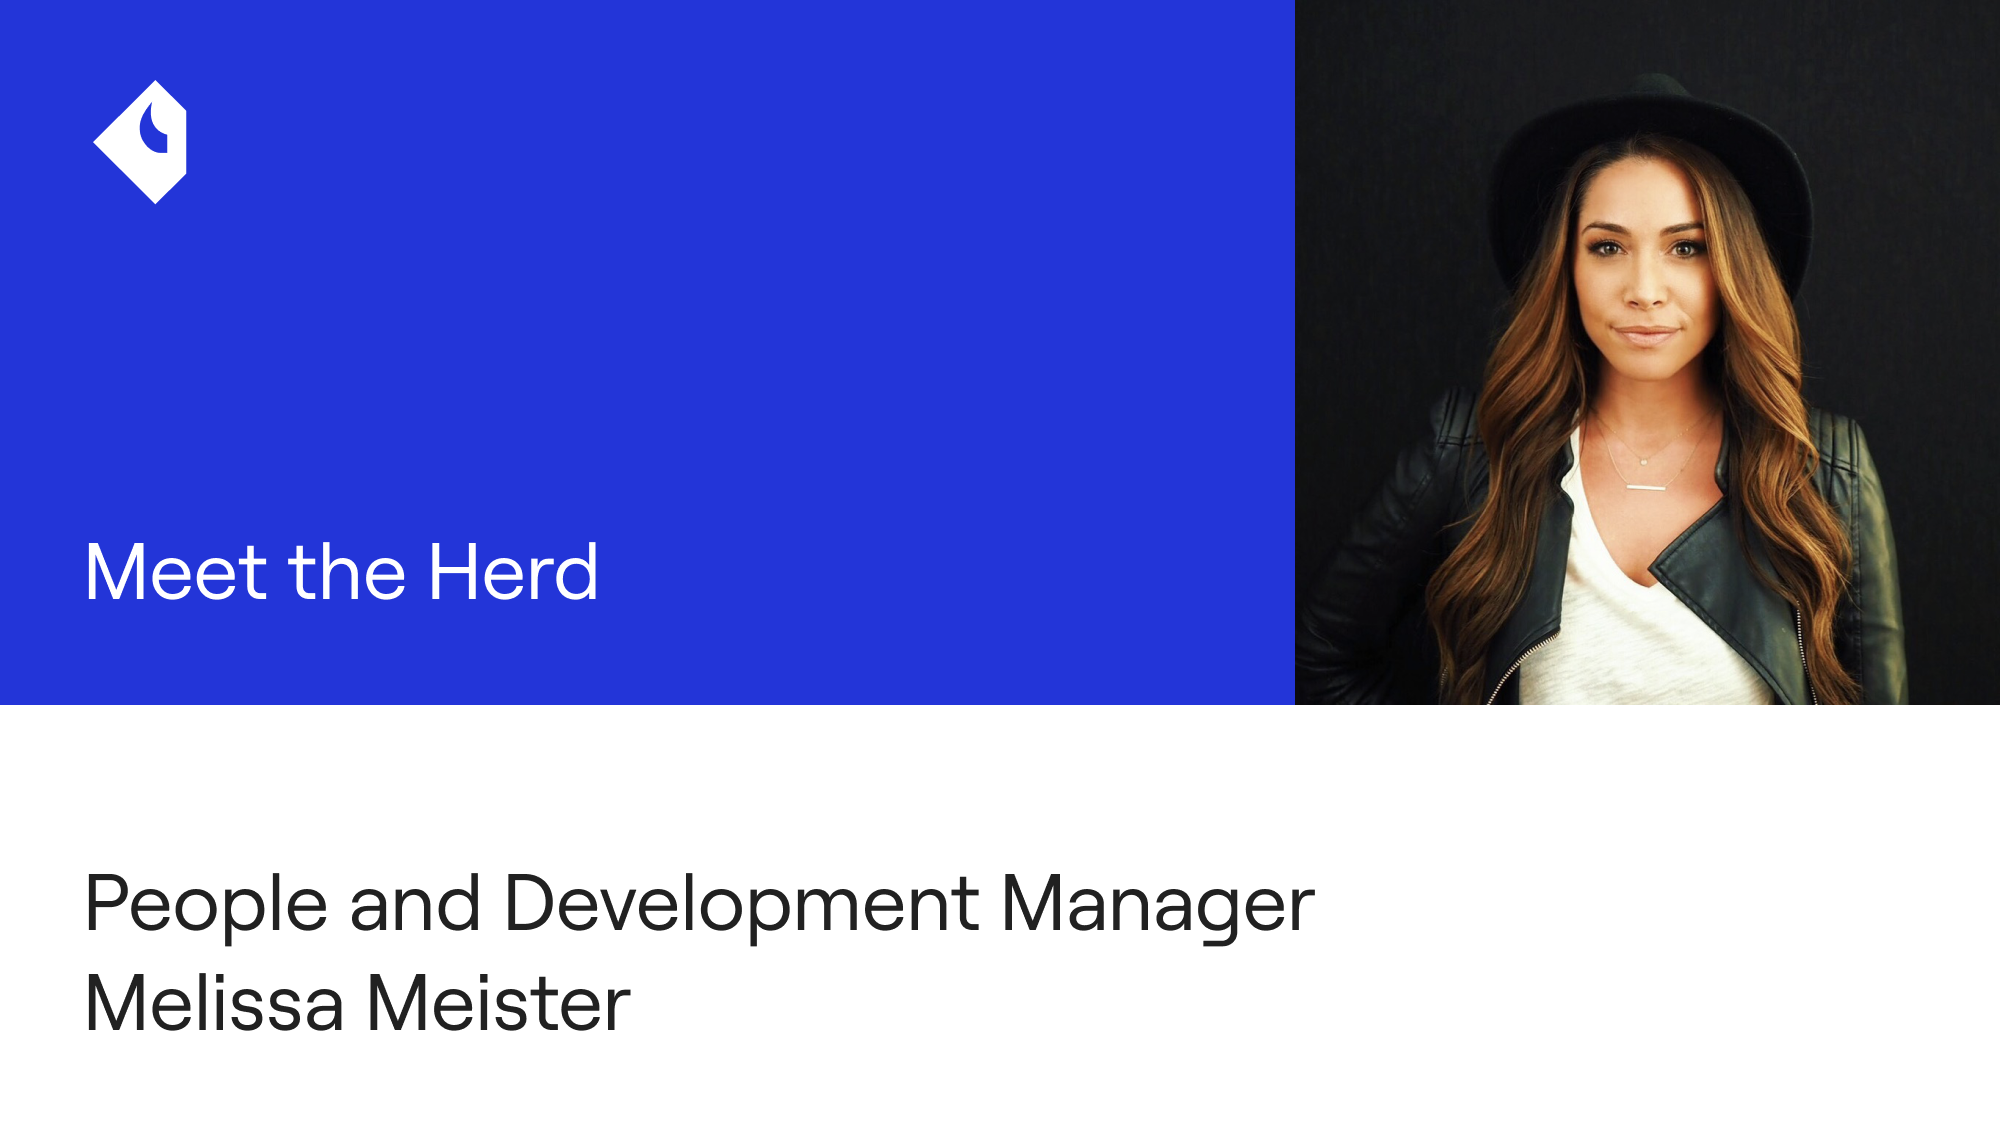 Meet the Herd: People and Development Manager Melissa Meister